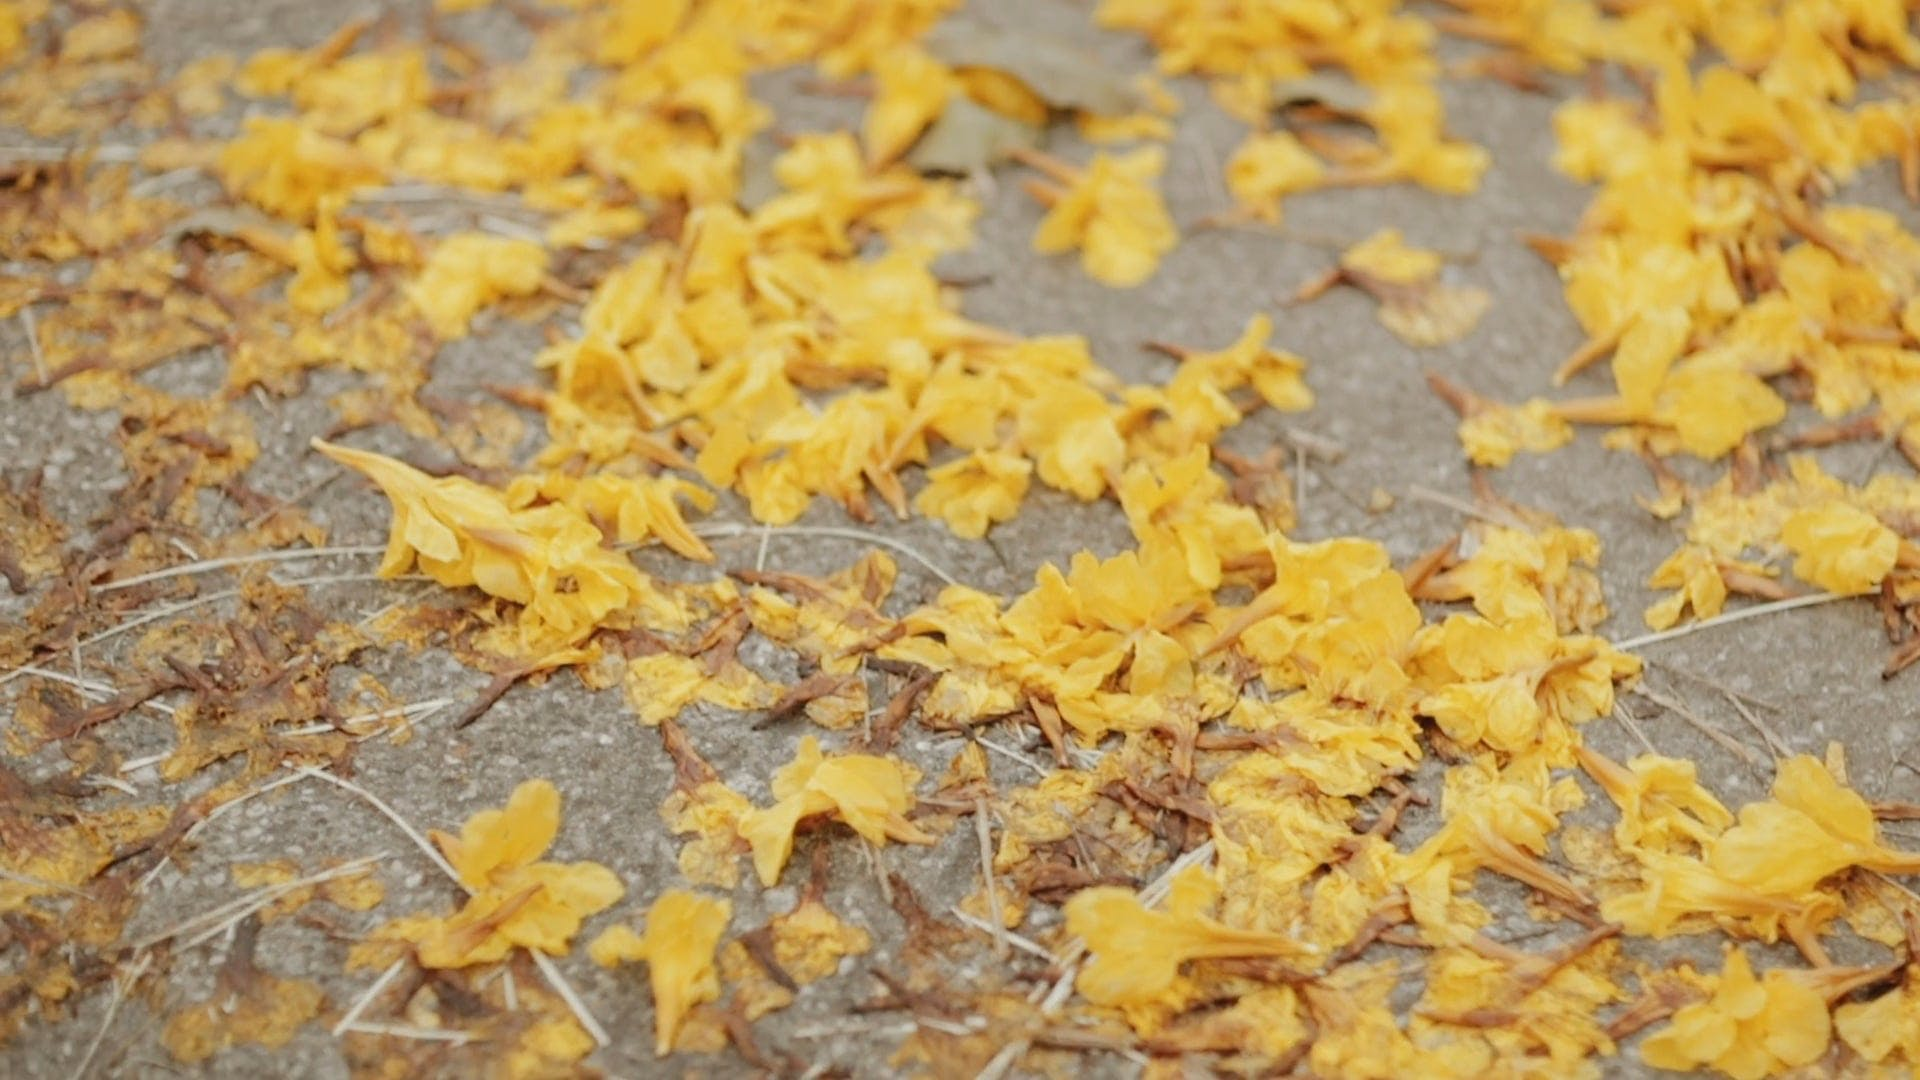 Fallen Autumn Leaves On The Road